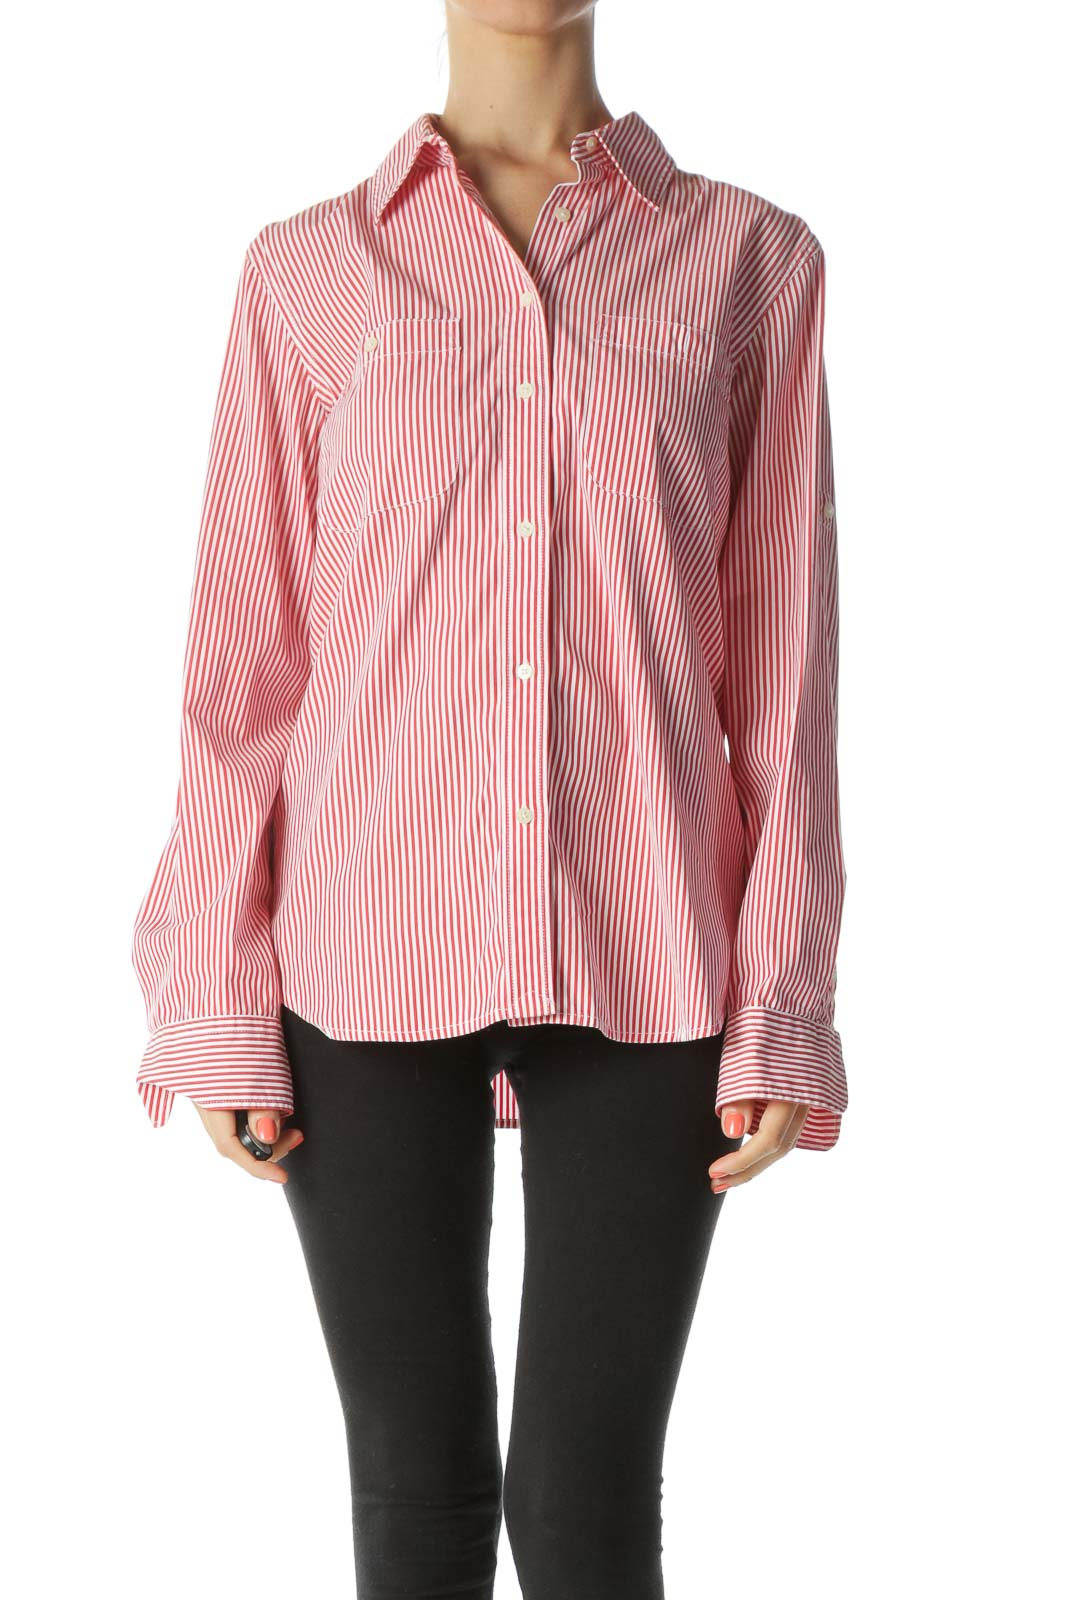 Red and White Striped Buttoned Collared Shirt